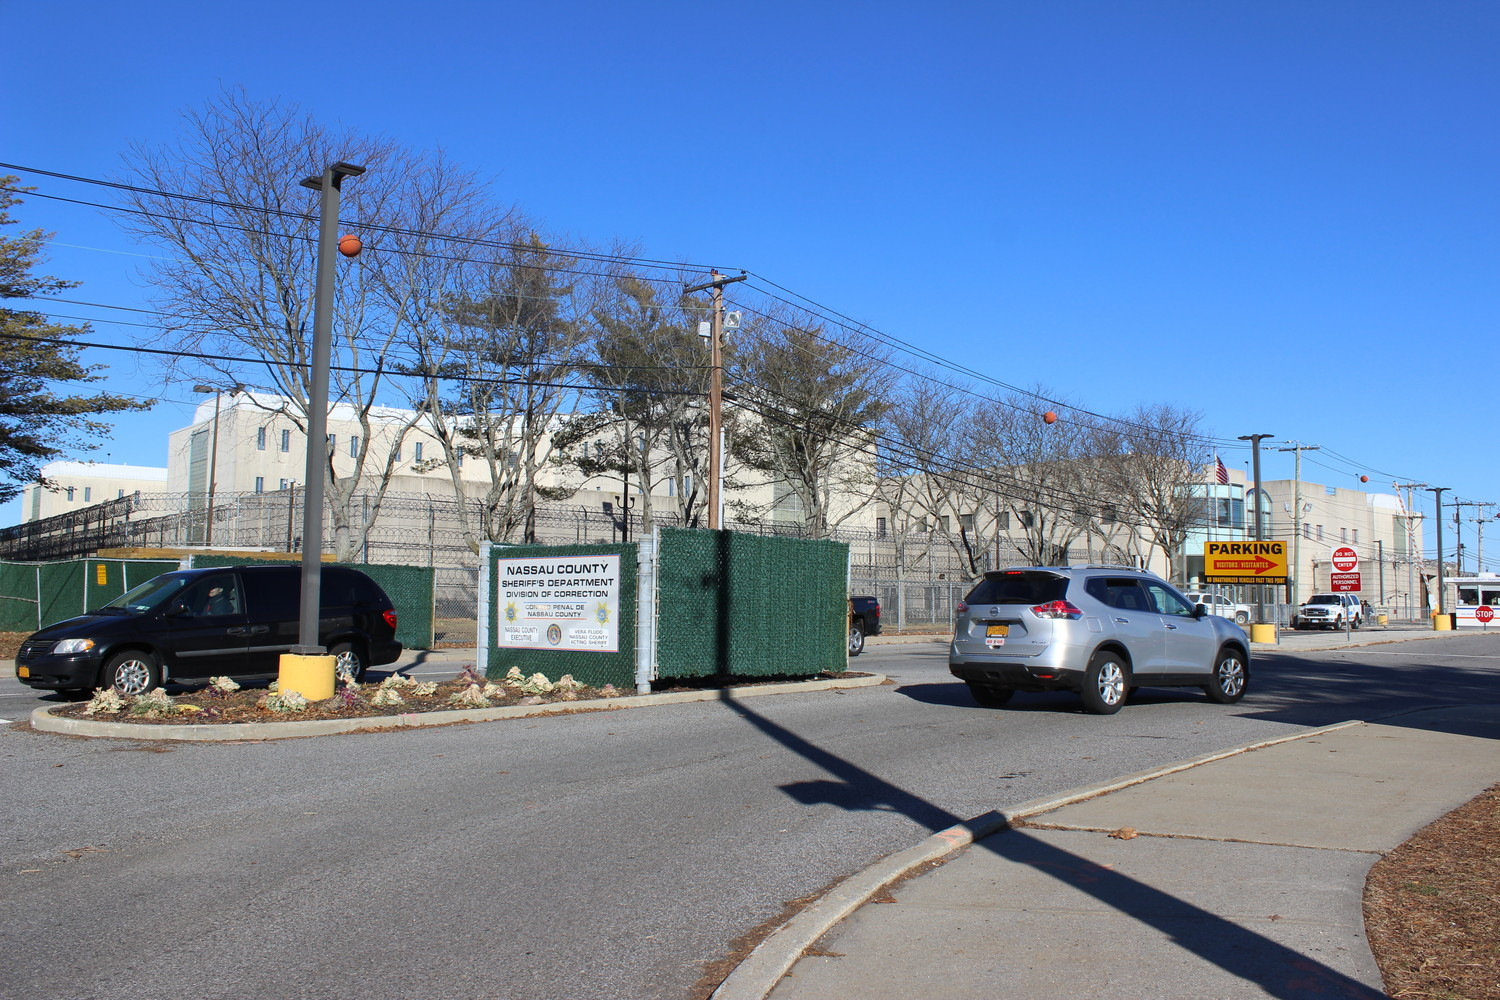 Violence Breaks Out At The Nassau County Jail Herald Community